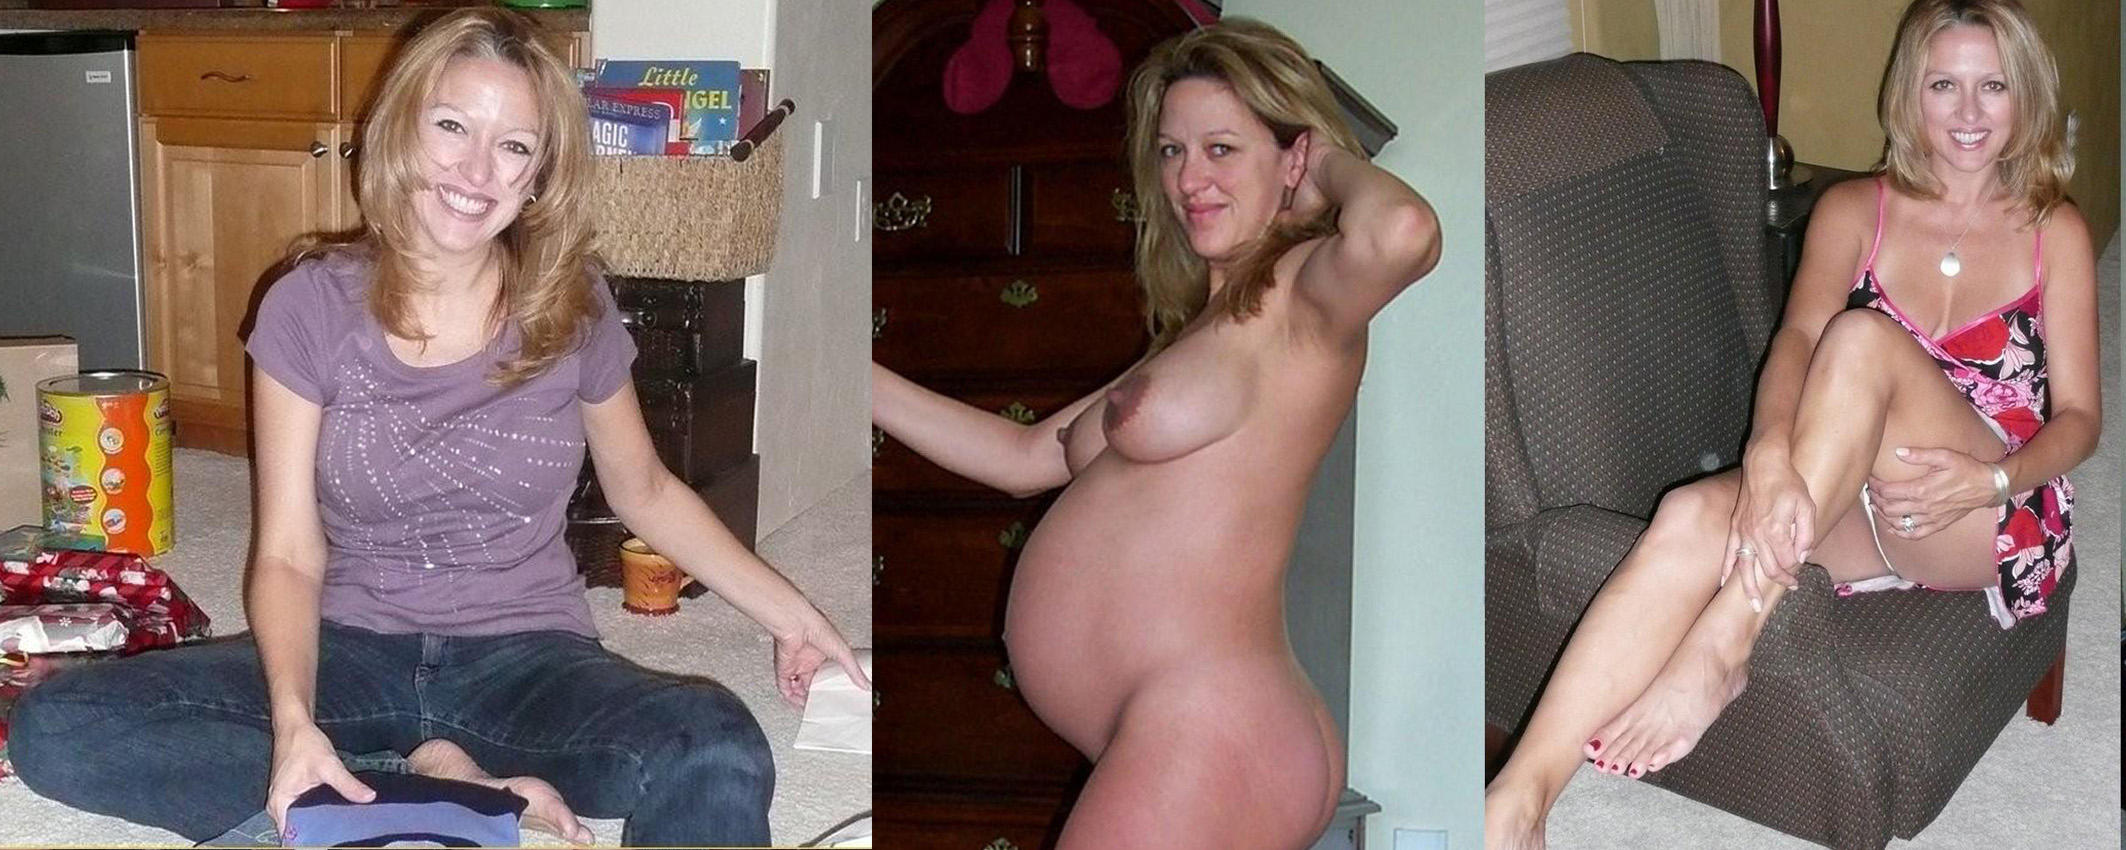 private adult videos